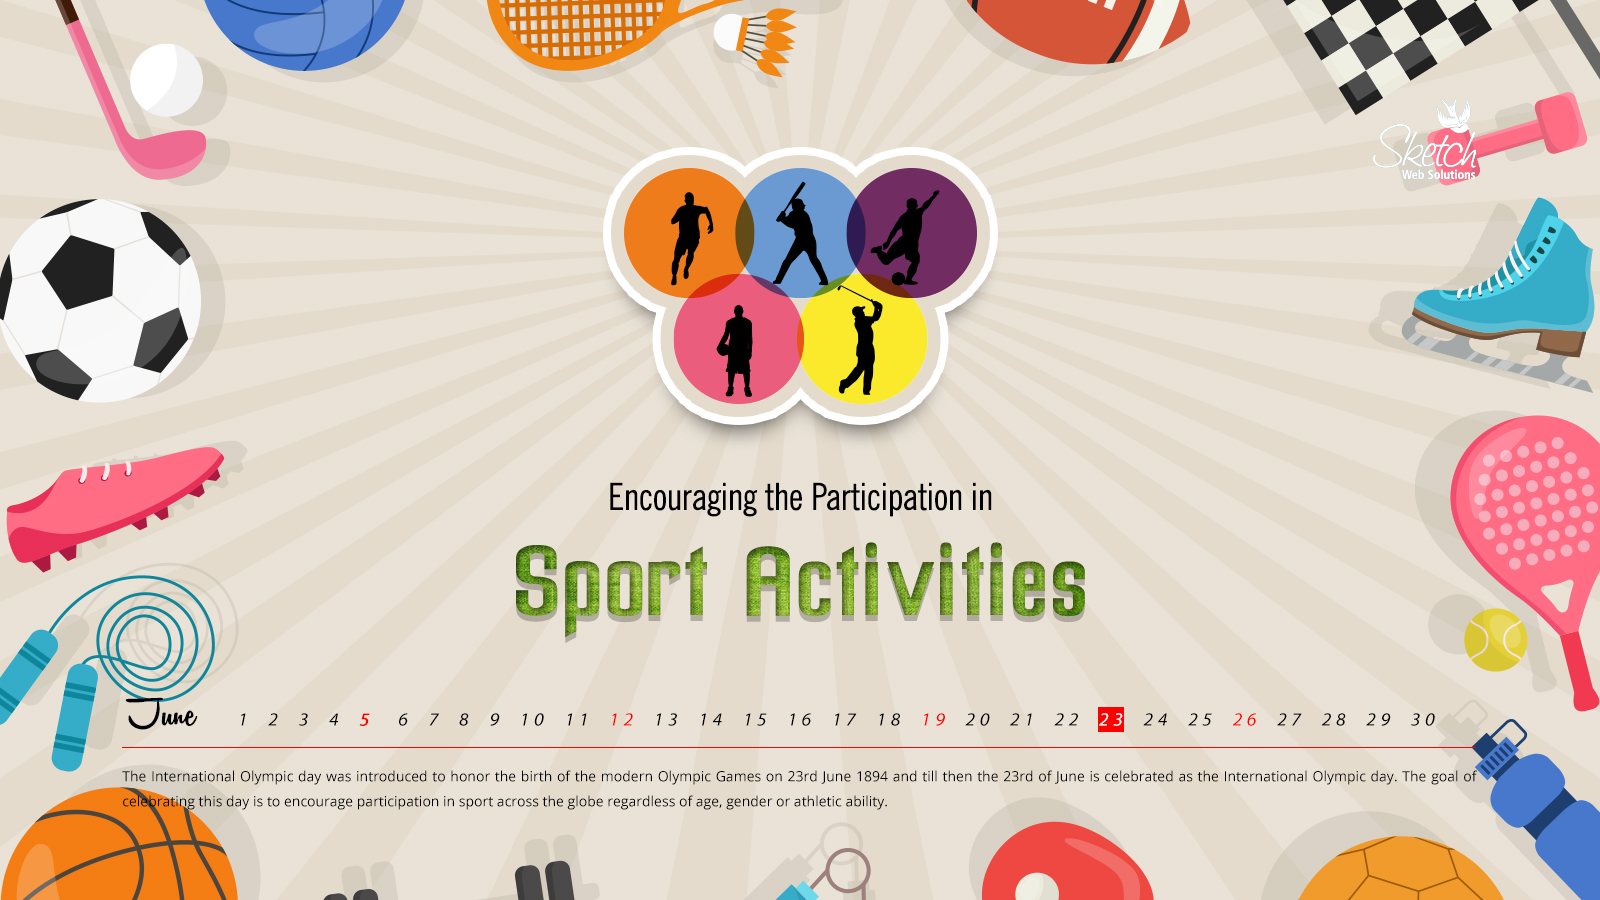 Encouraging the Participation in Sport Activities